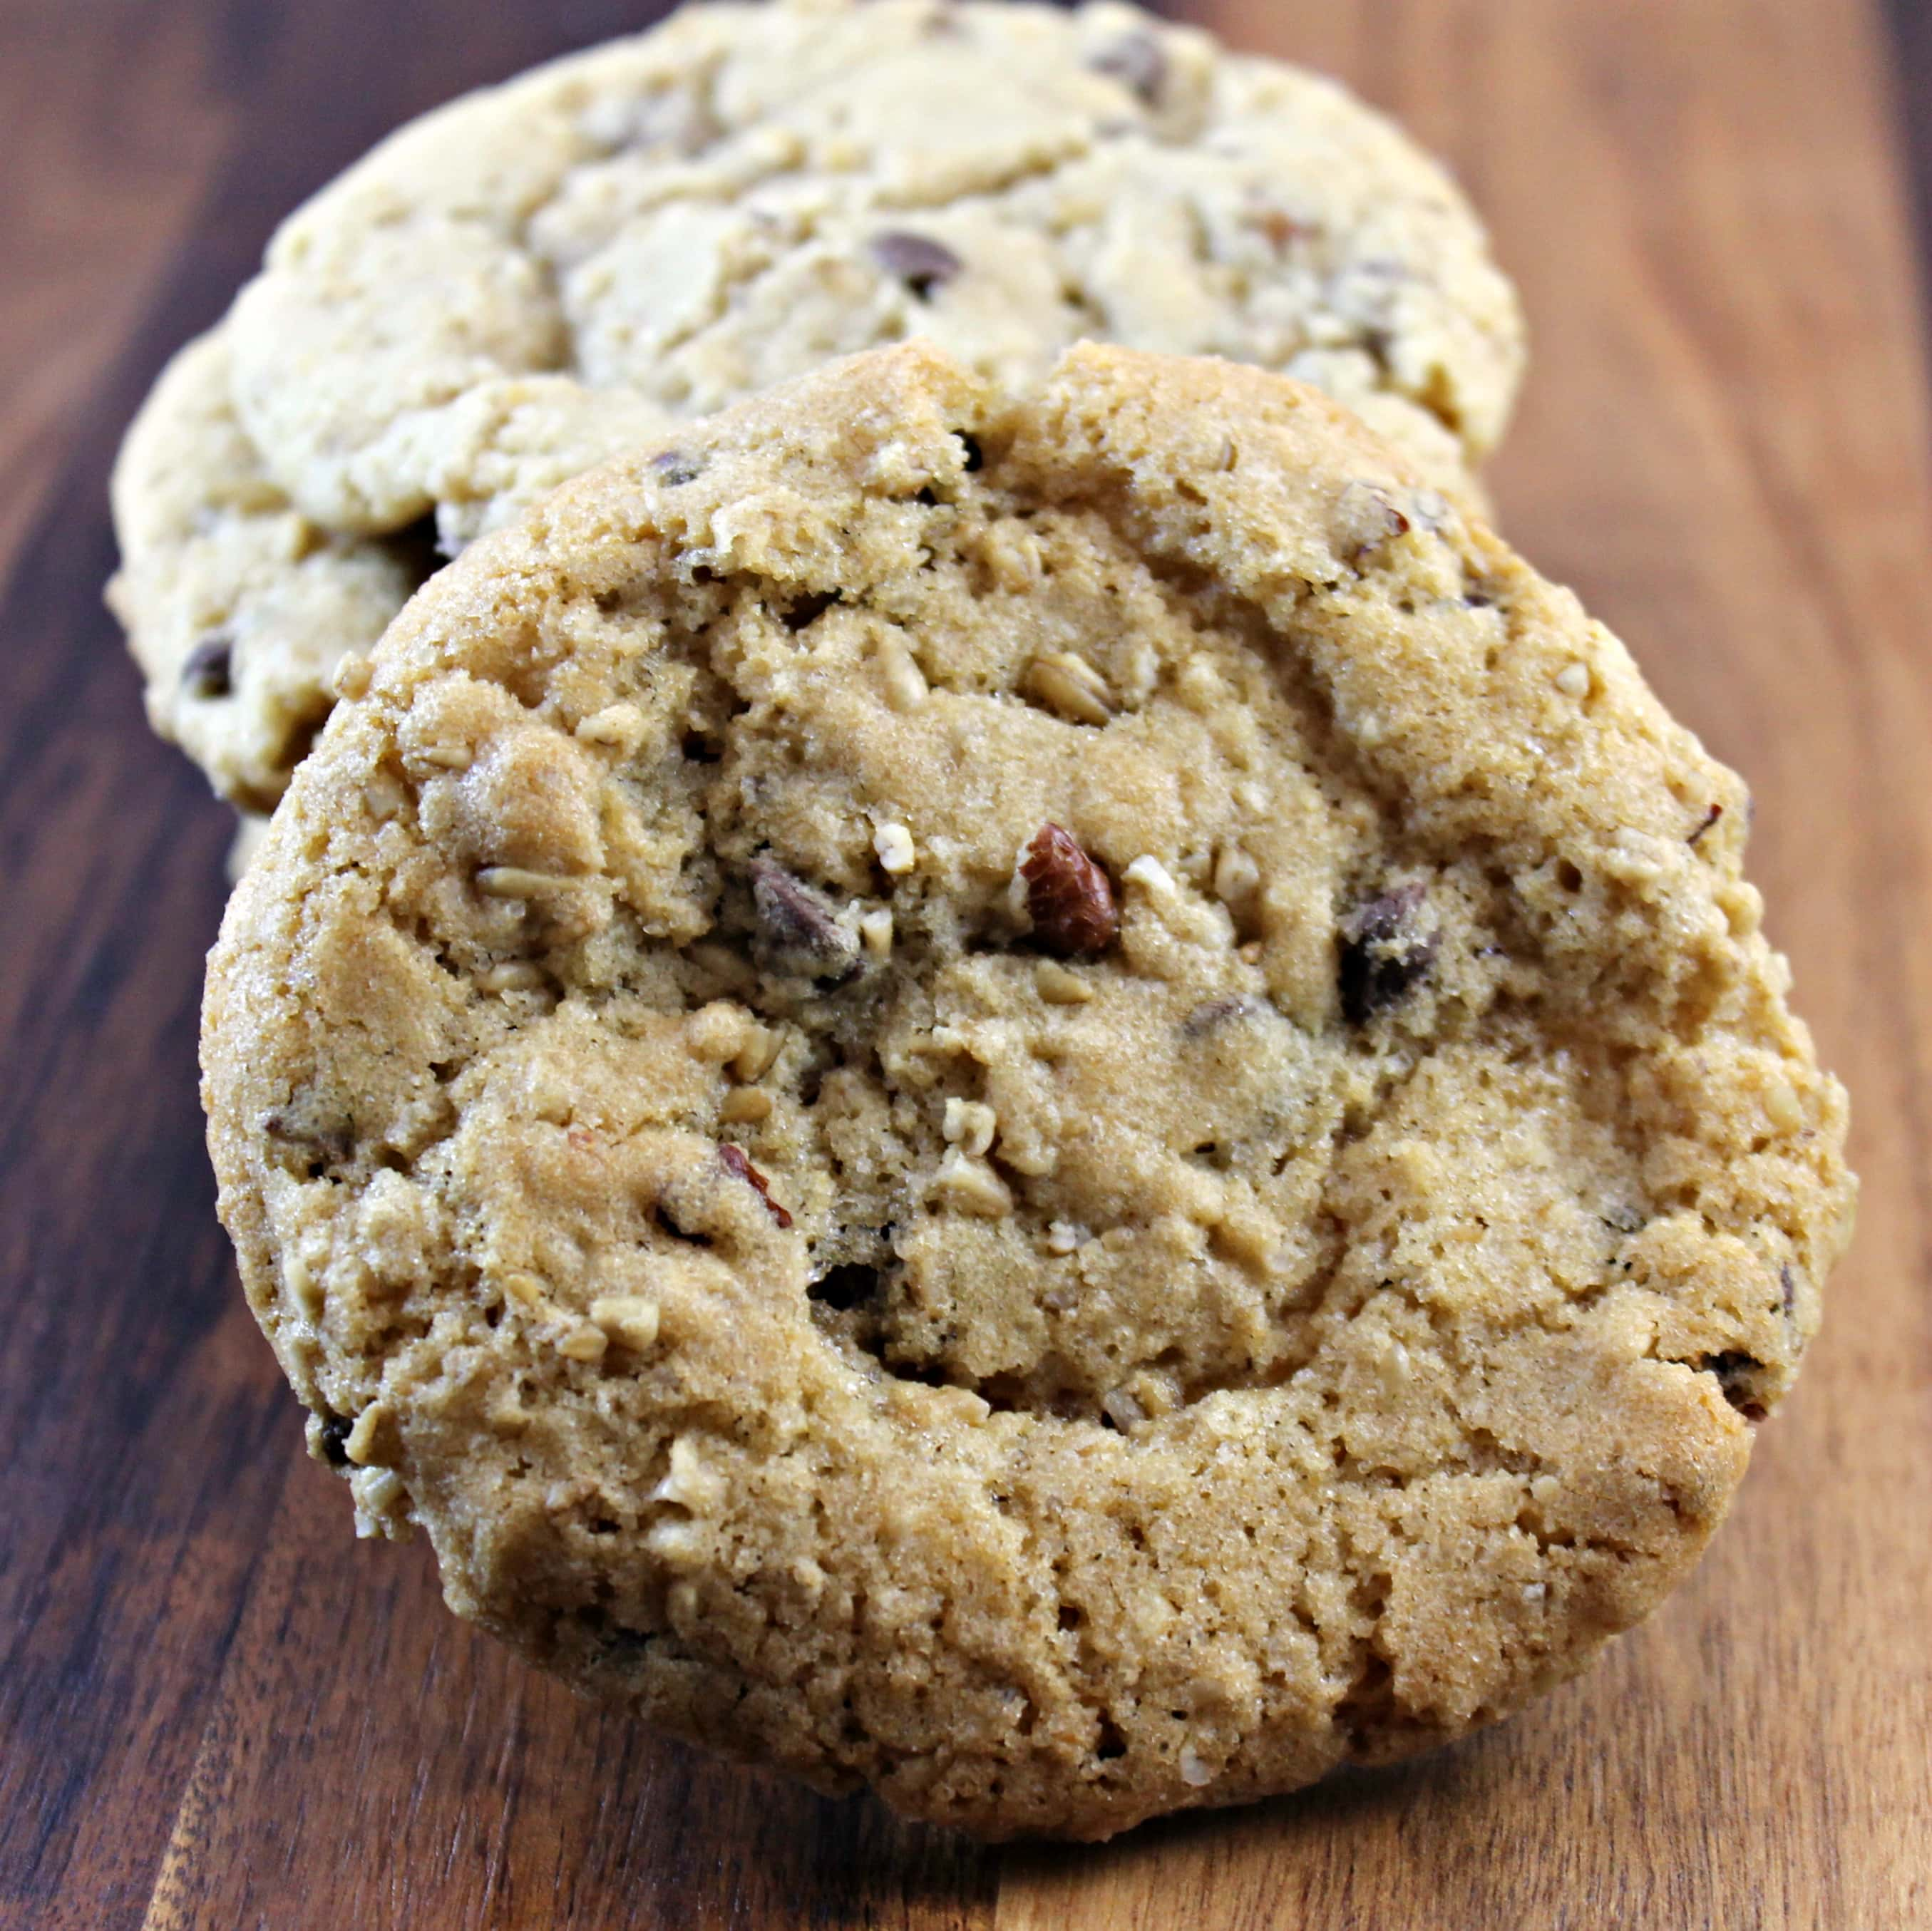 Oatmeal, Chocolate Chip, and Pecan Cookies | I Can Cook That